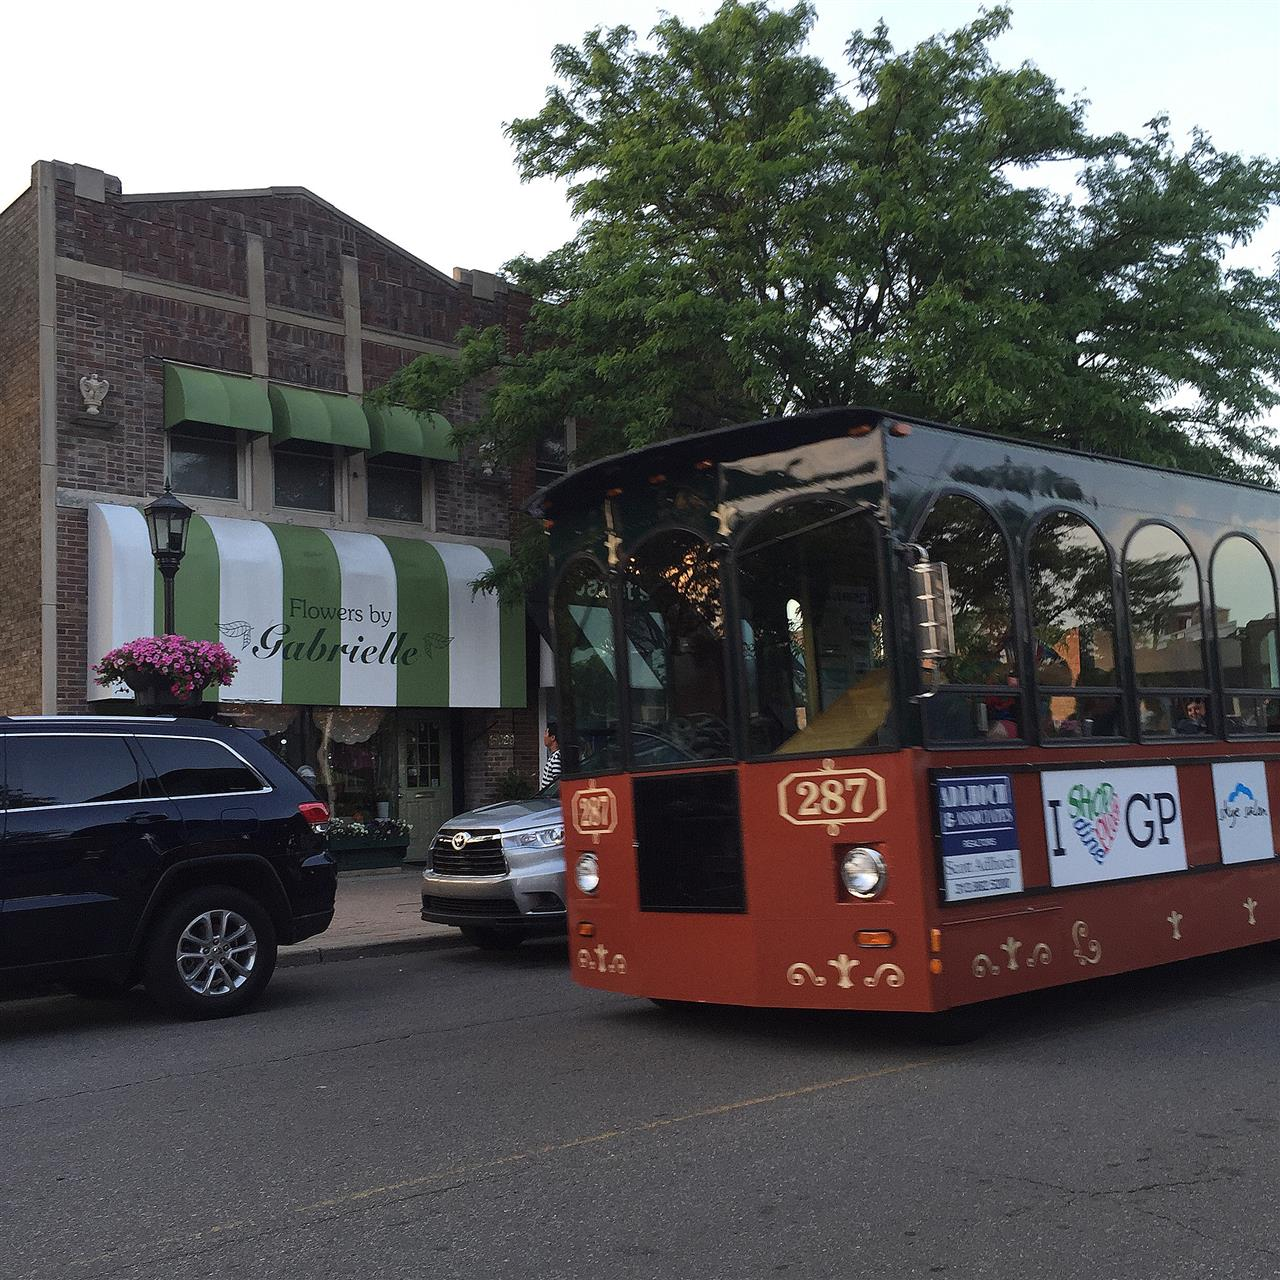 Grosse Pointe's K-Line trolley in action ~ Grosse Pointe Farms, Michigan #LeadingRElocal #GrossePointe #Michigan